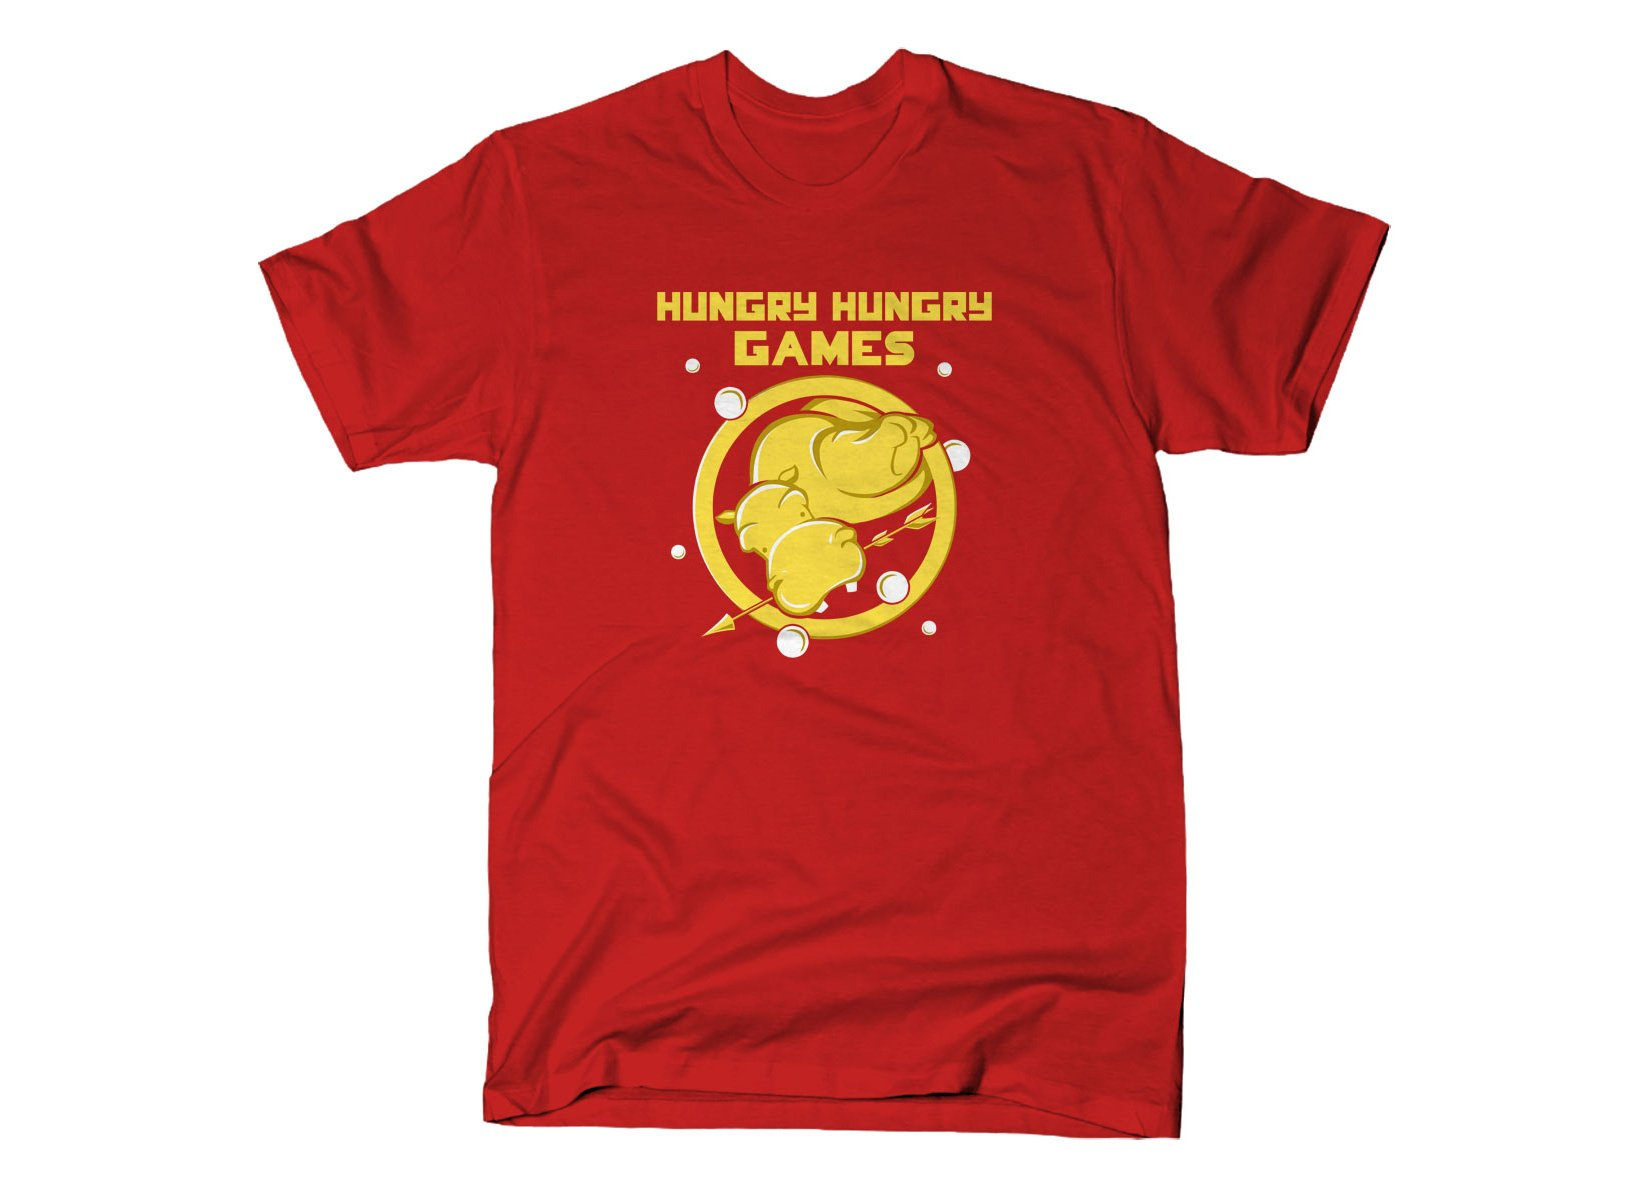 Hungry Hungry Games on Mens T-Shirt